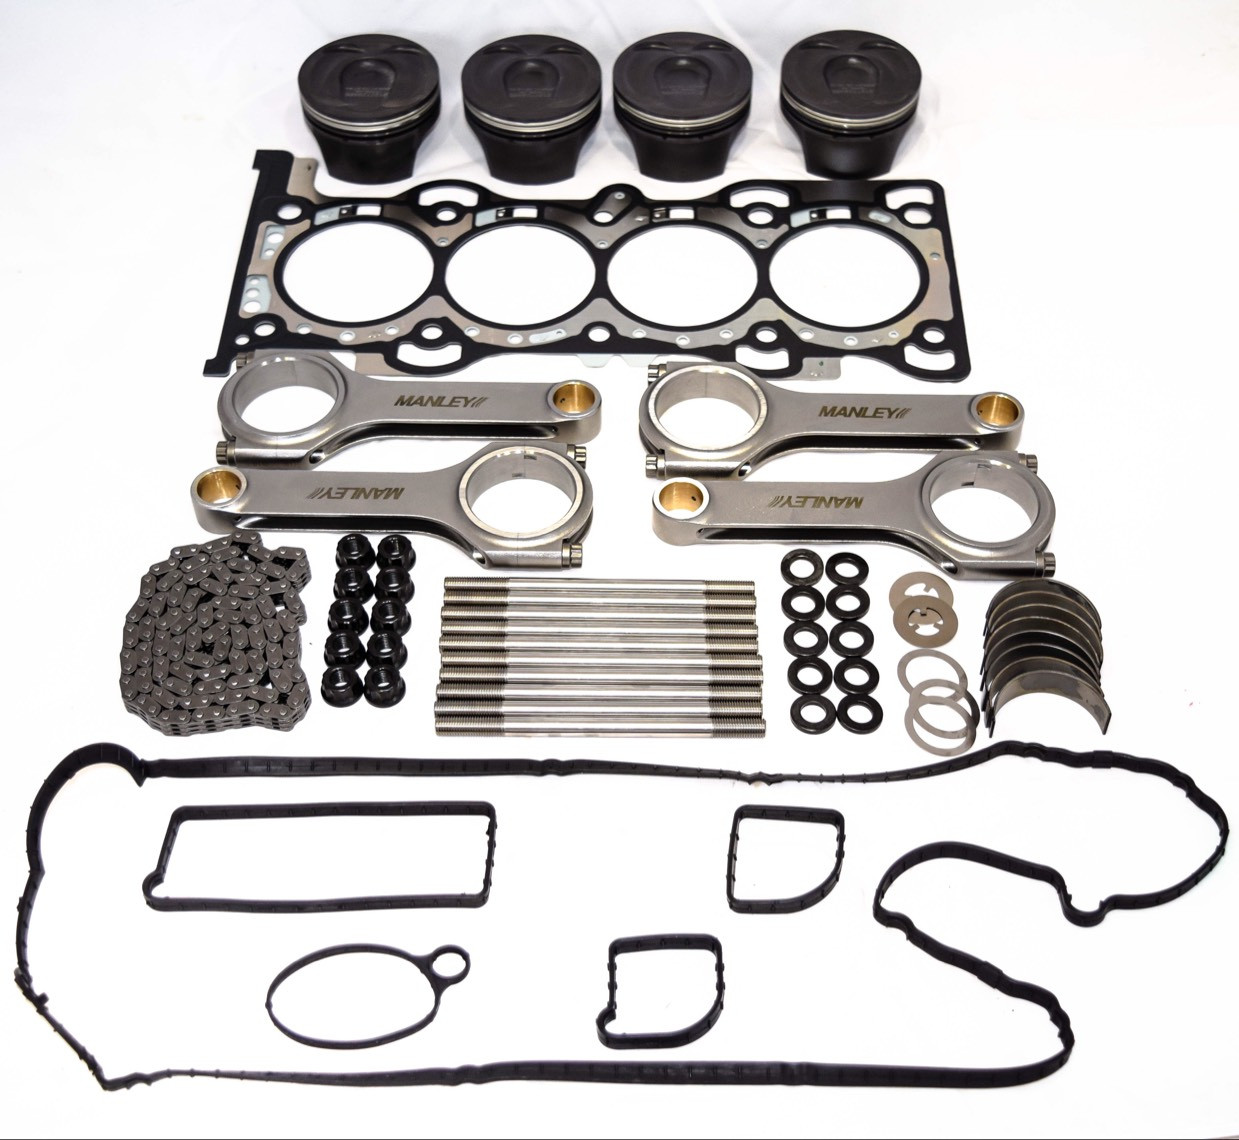 2.0 L Ecoboost >> Pop Drop Engine Build Kit For Ford Ecoboost 2 0l Speed Perf6rmanc3